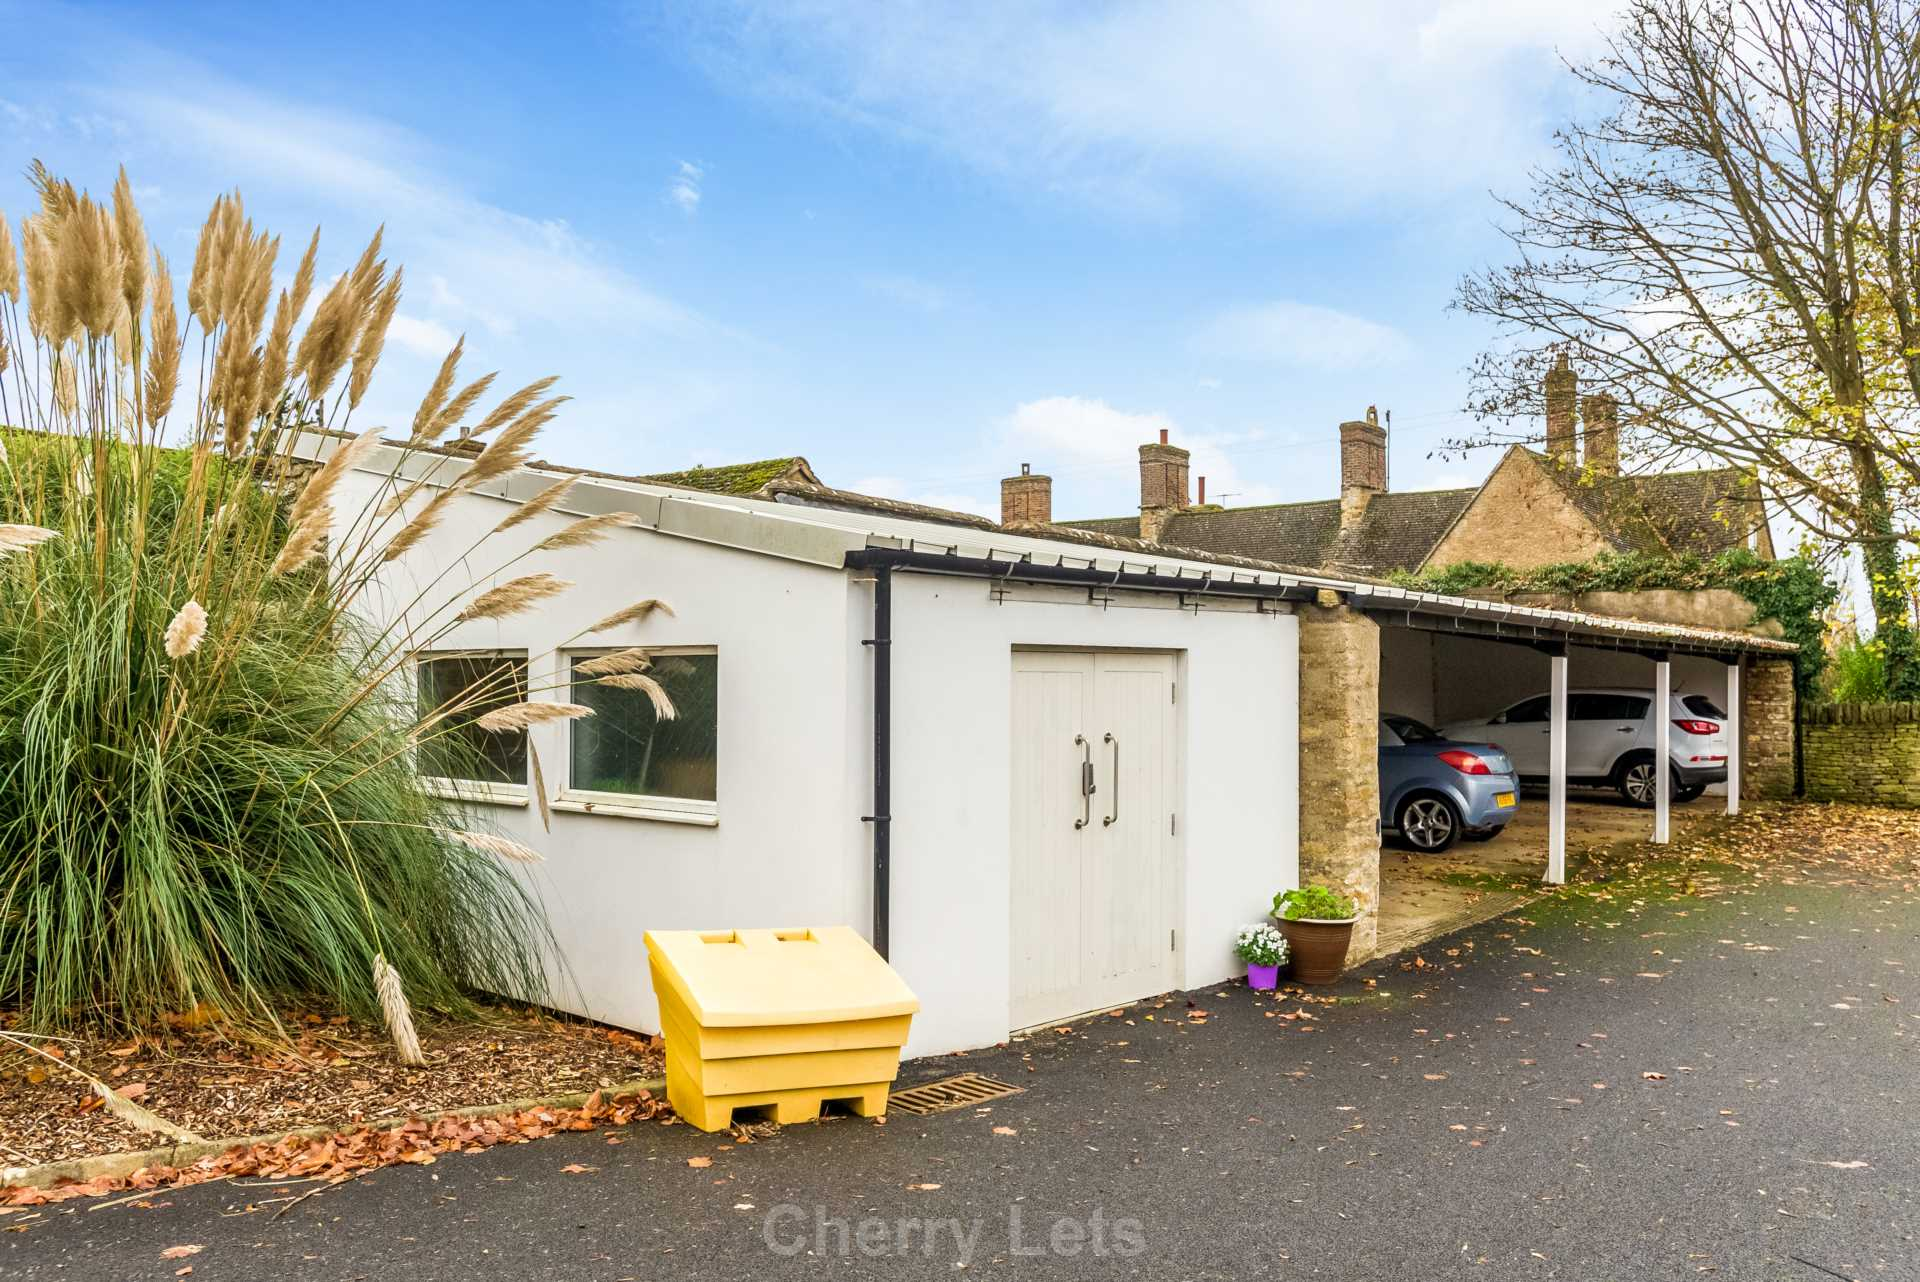 2 bed apartment to rent in Astrop Grange, Kings Sutton, OX17  - Property Image 19